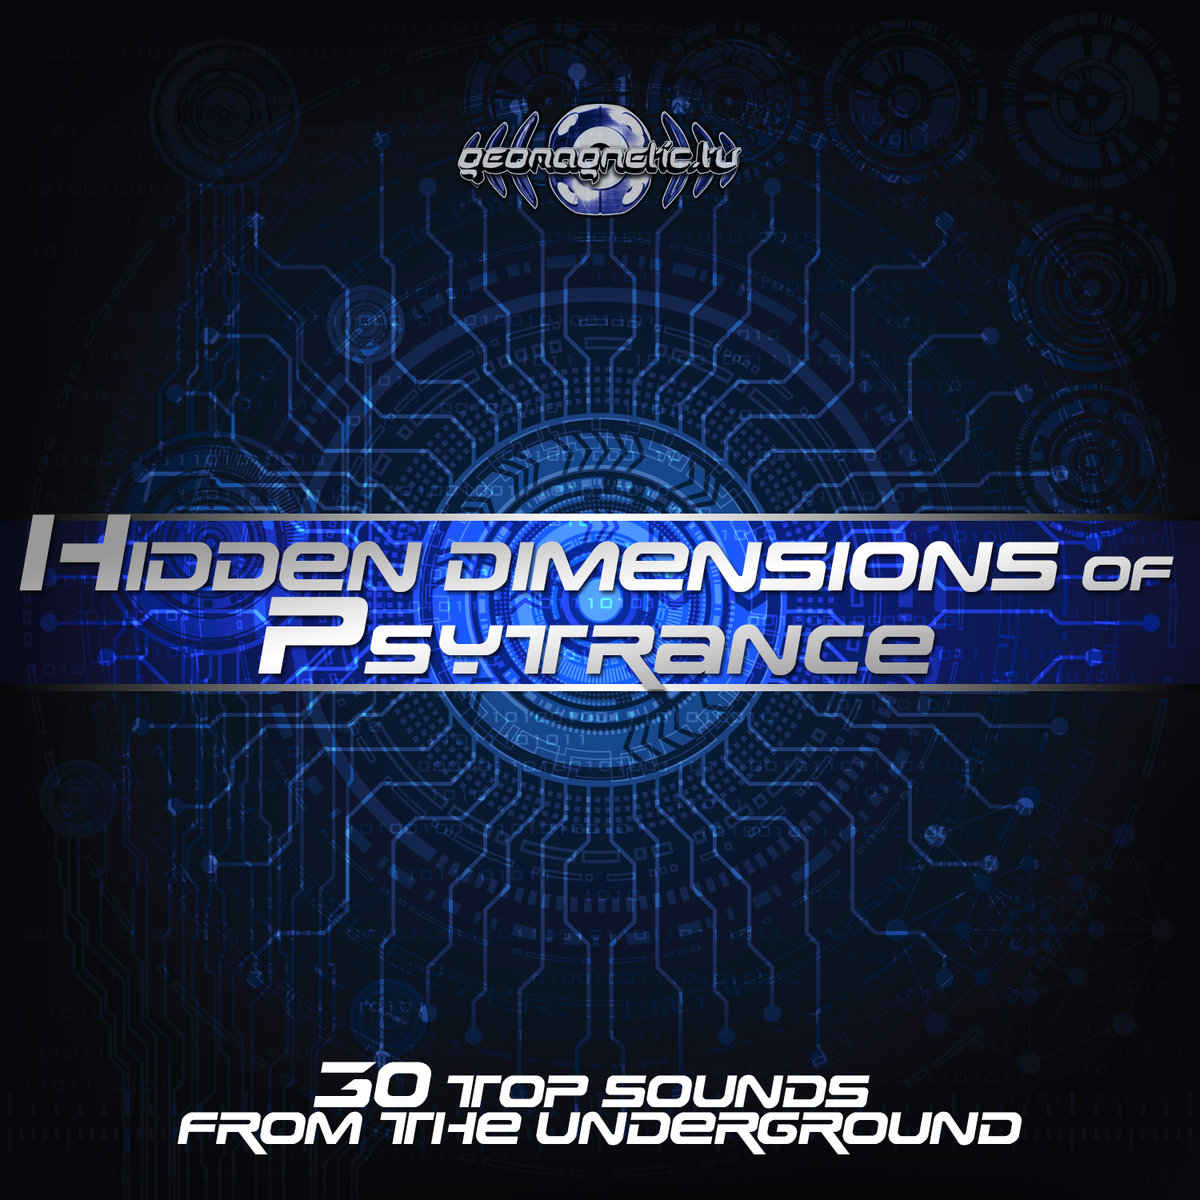 Ray Subject - Storm @ 'Various Artists - Hidden Dimensions of Psytrance (30 Top Sounds From The Underground)' album (electronic, goa)